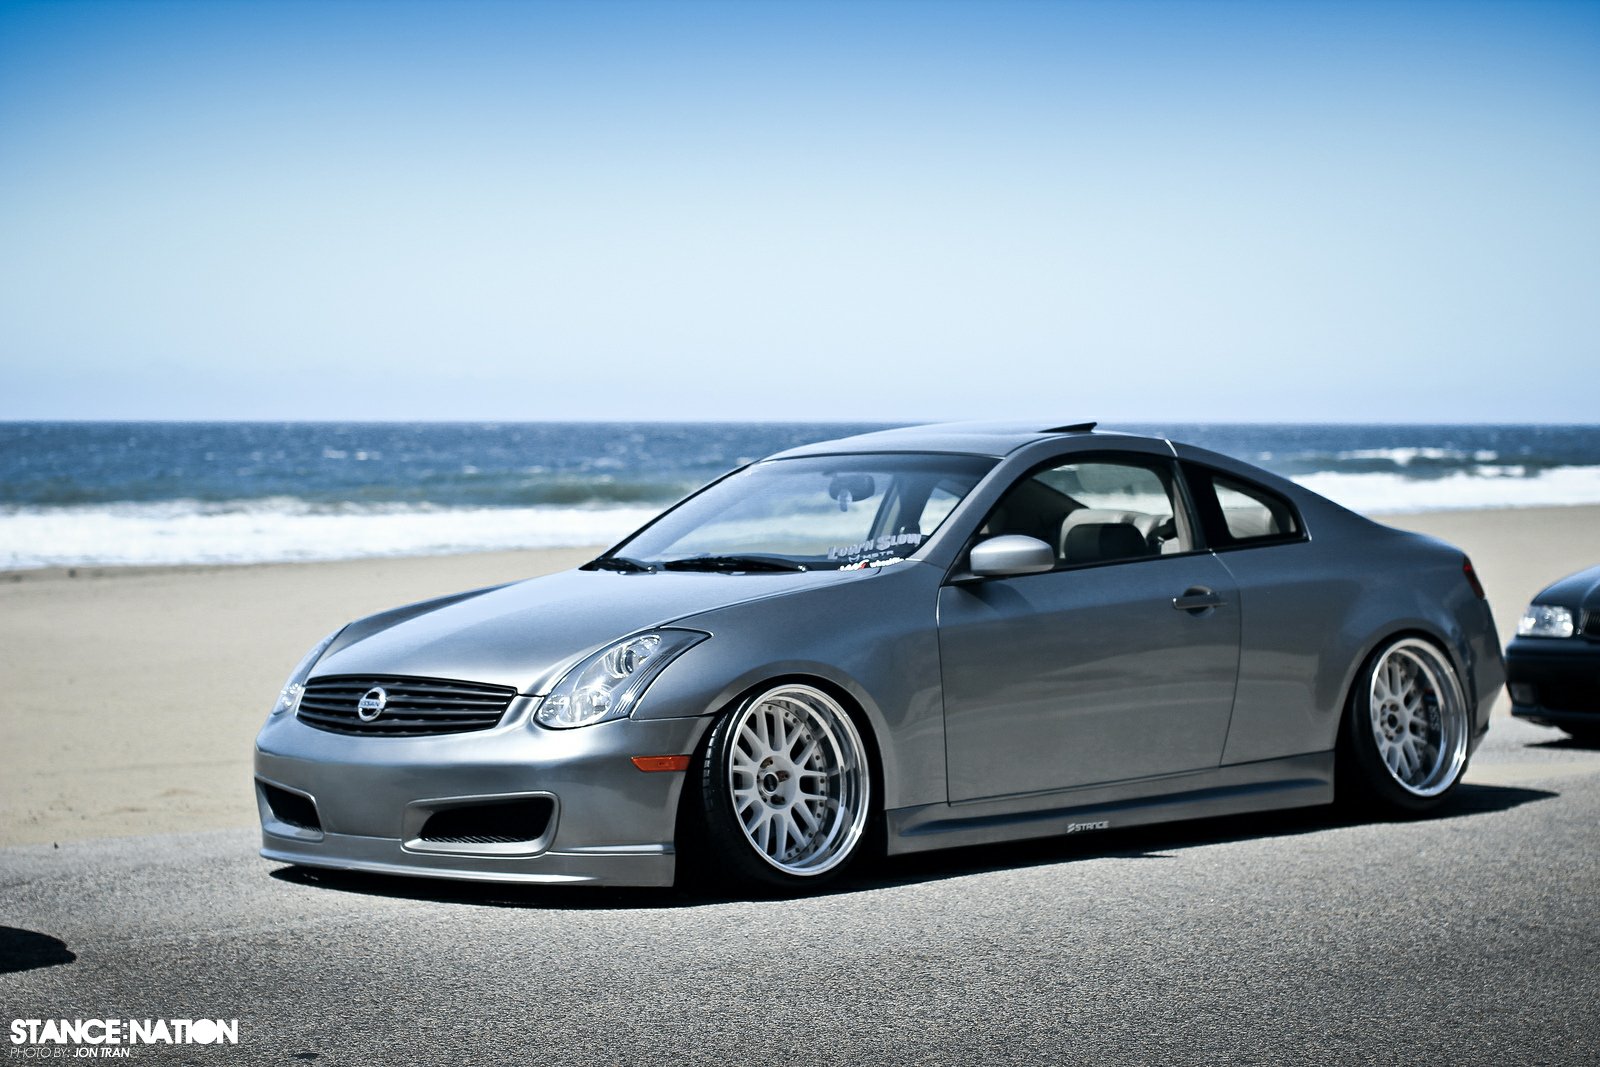 2003 Infiniti G35 Coupe >> Steezy. | StanceNation™ // Form > Function